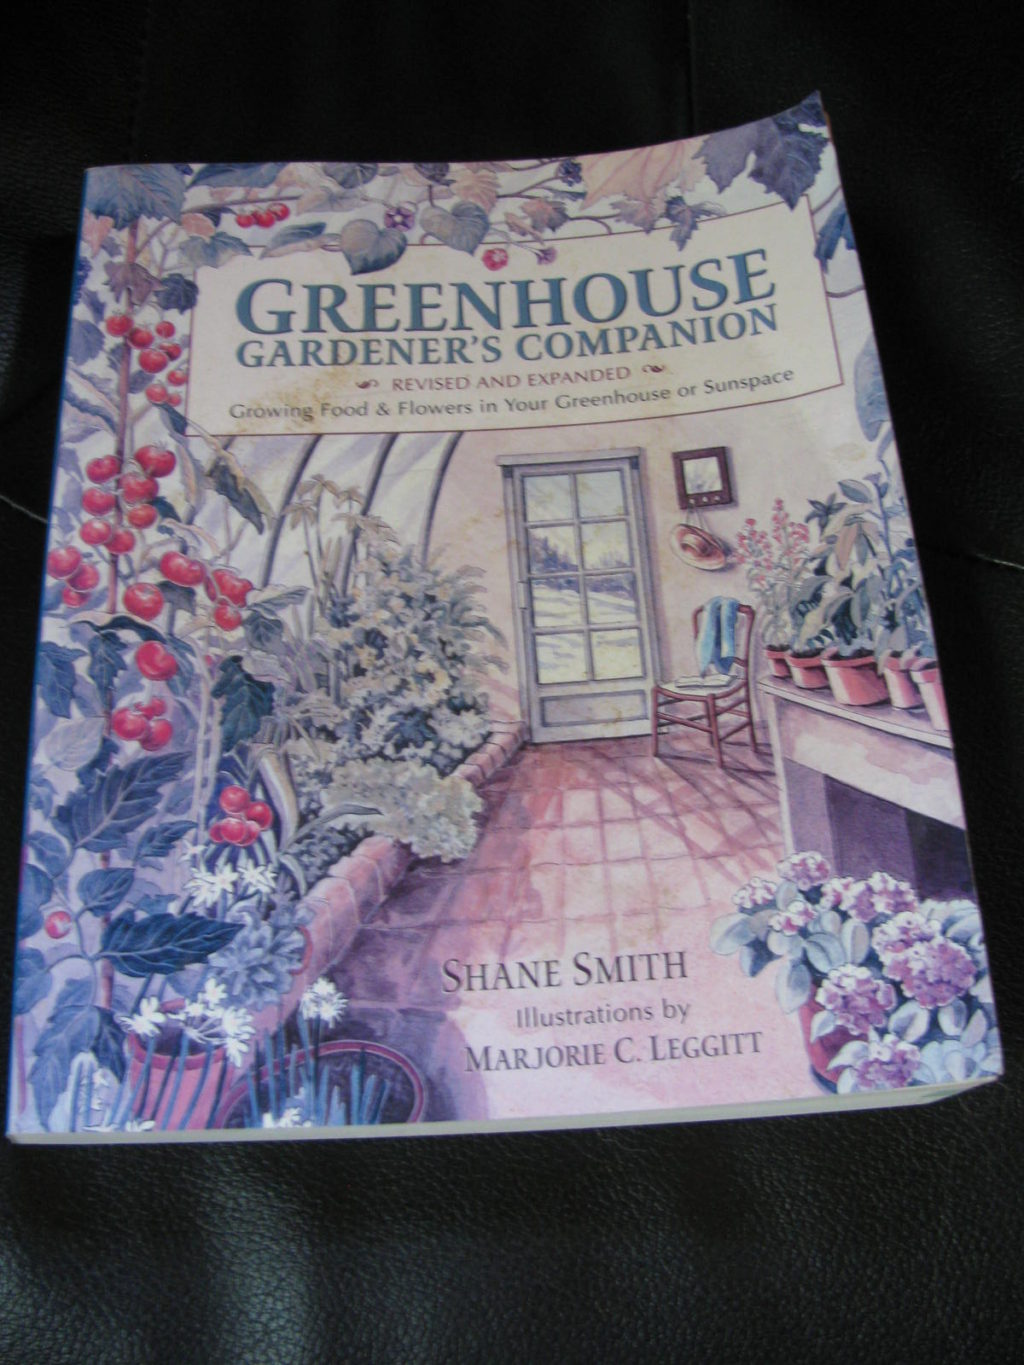 greenhouse gardener's companion book